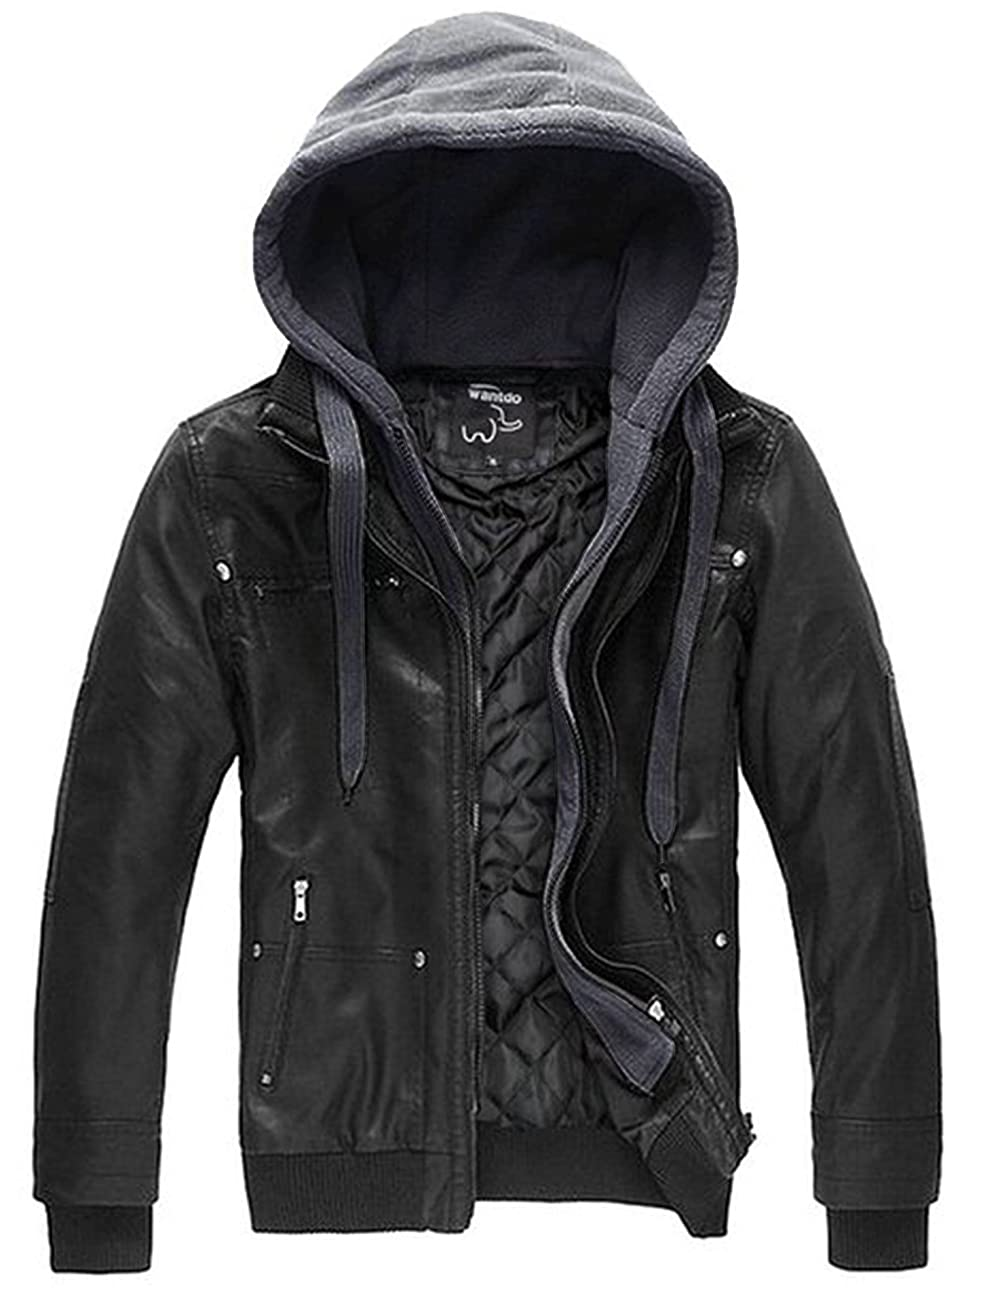 Wantdo Men's Leather Jacket with Removable Hood 0